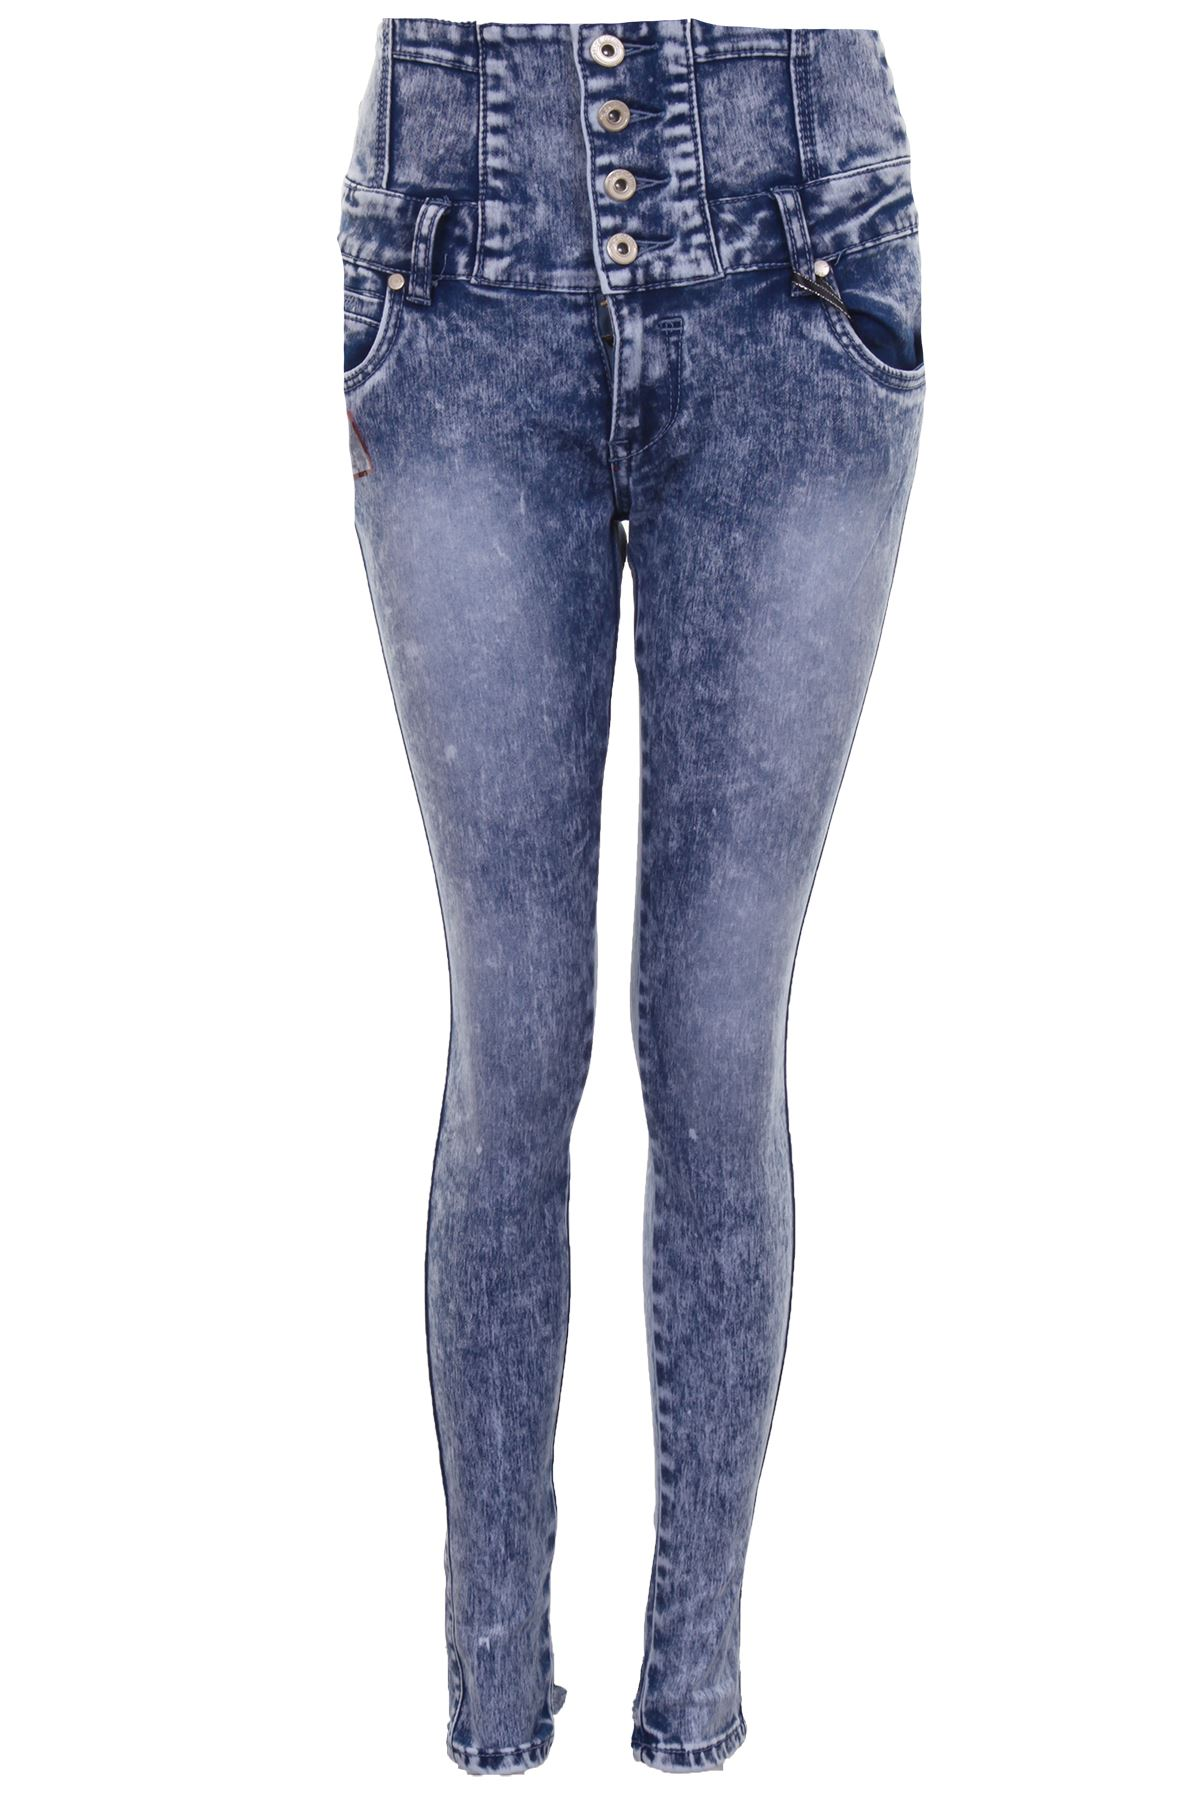 womens denim soft jeans Related Products: soft casual pants women soft denim pants fashion soft denim jeans man soft casual pants woman cotton thin trousers women jeans soft pants women womens denim soft jeans Promotion: womens jeans denim cartoon soft skinny jeans women.